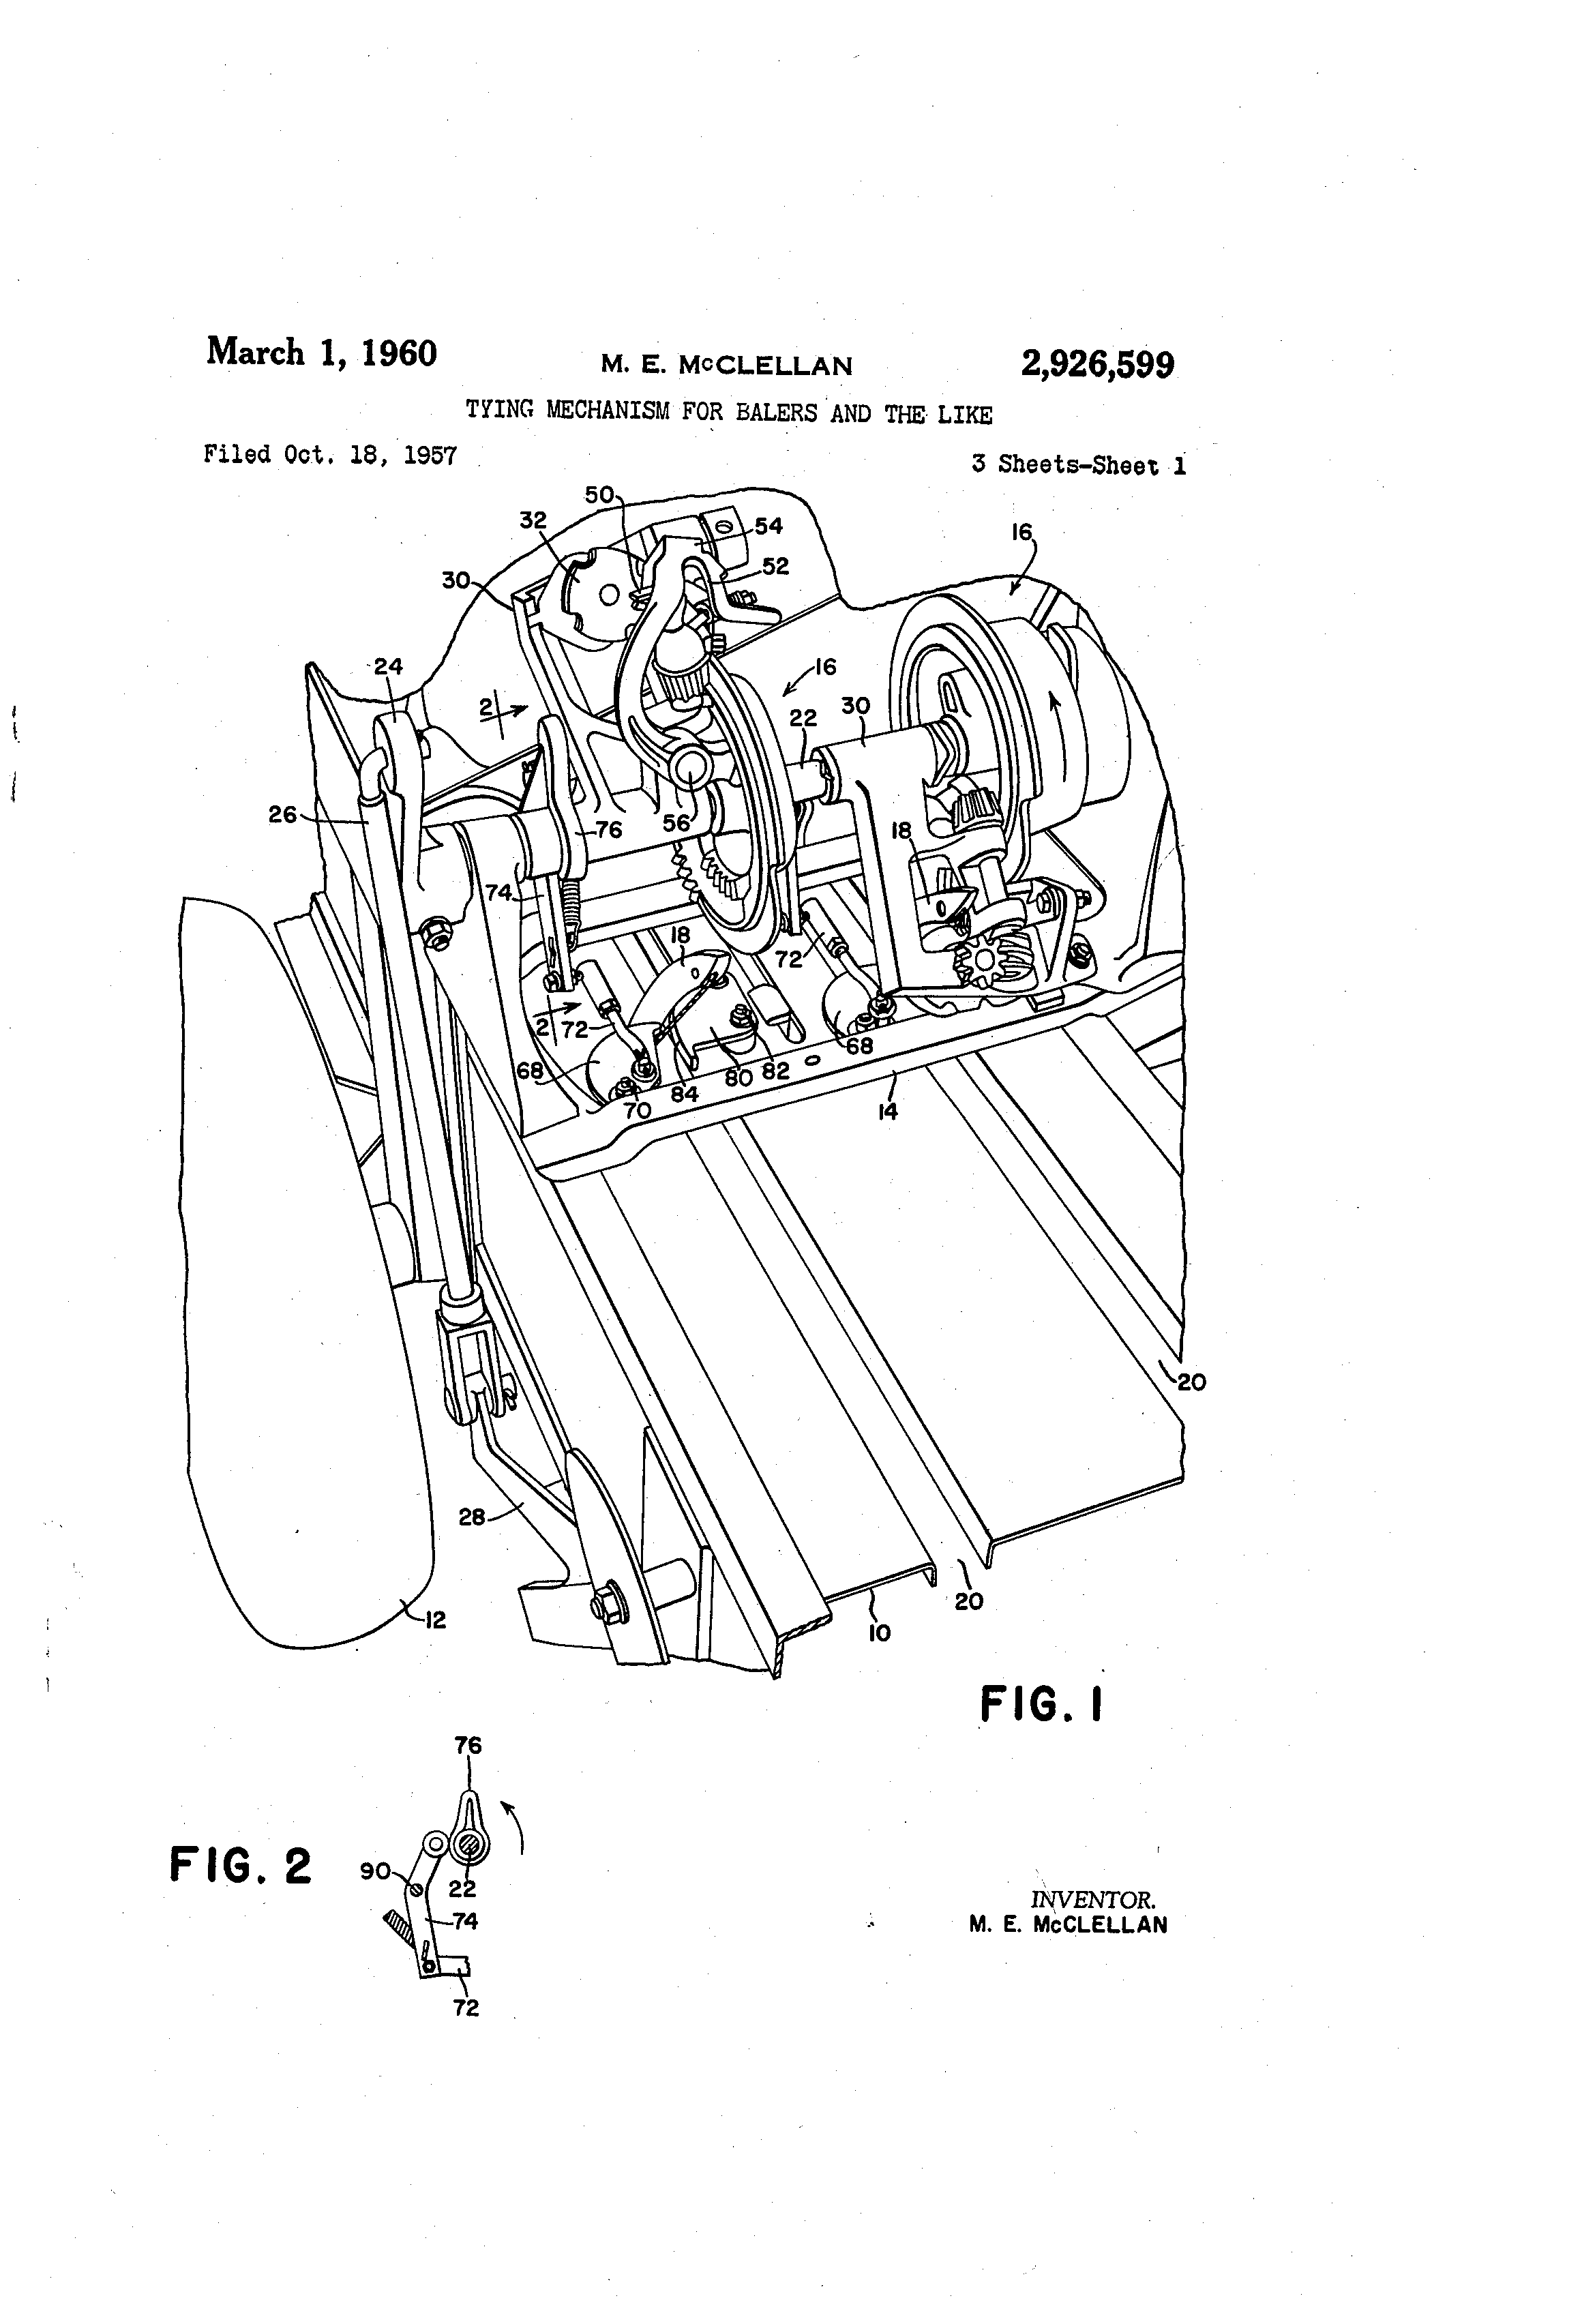 Brevet Us2926599 Tying Mechanism For Balers And The Like Google 1957 Ford Ignition Switch Wiring Patent Drawing